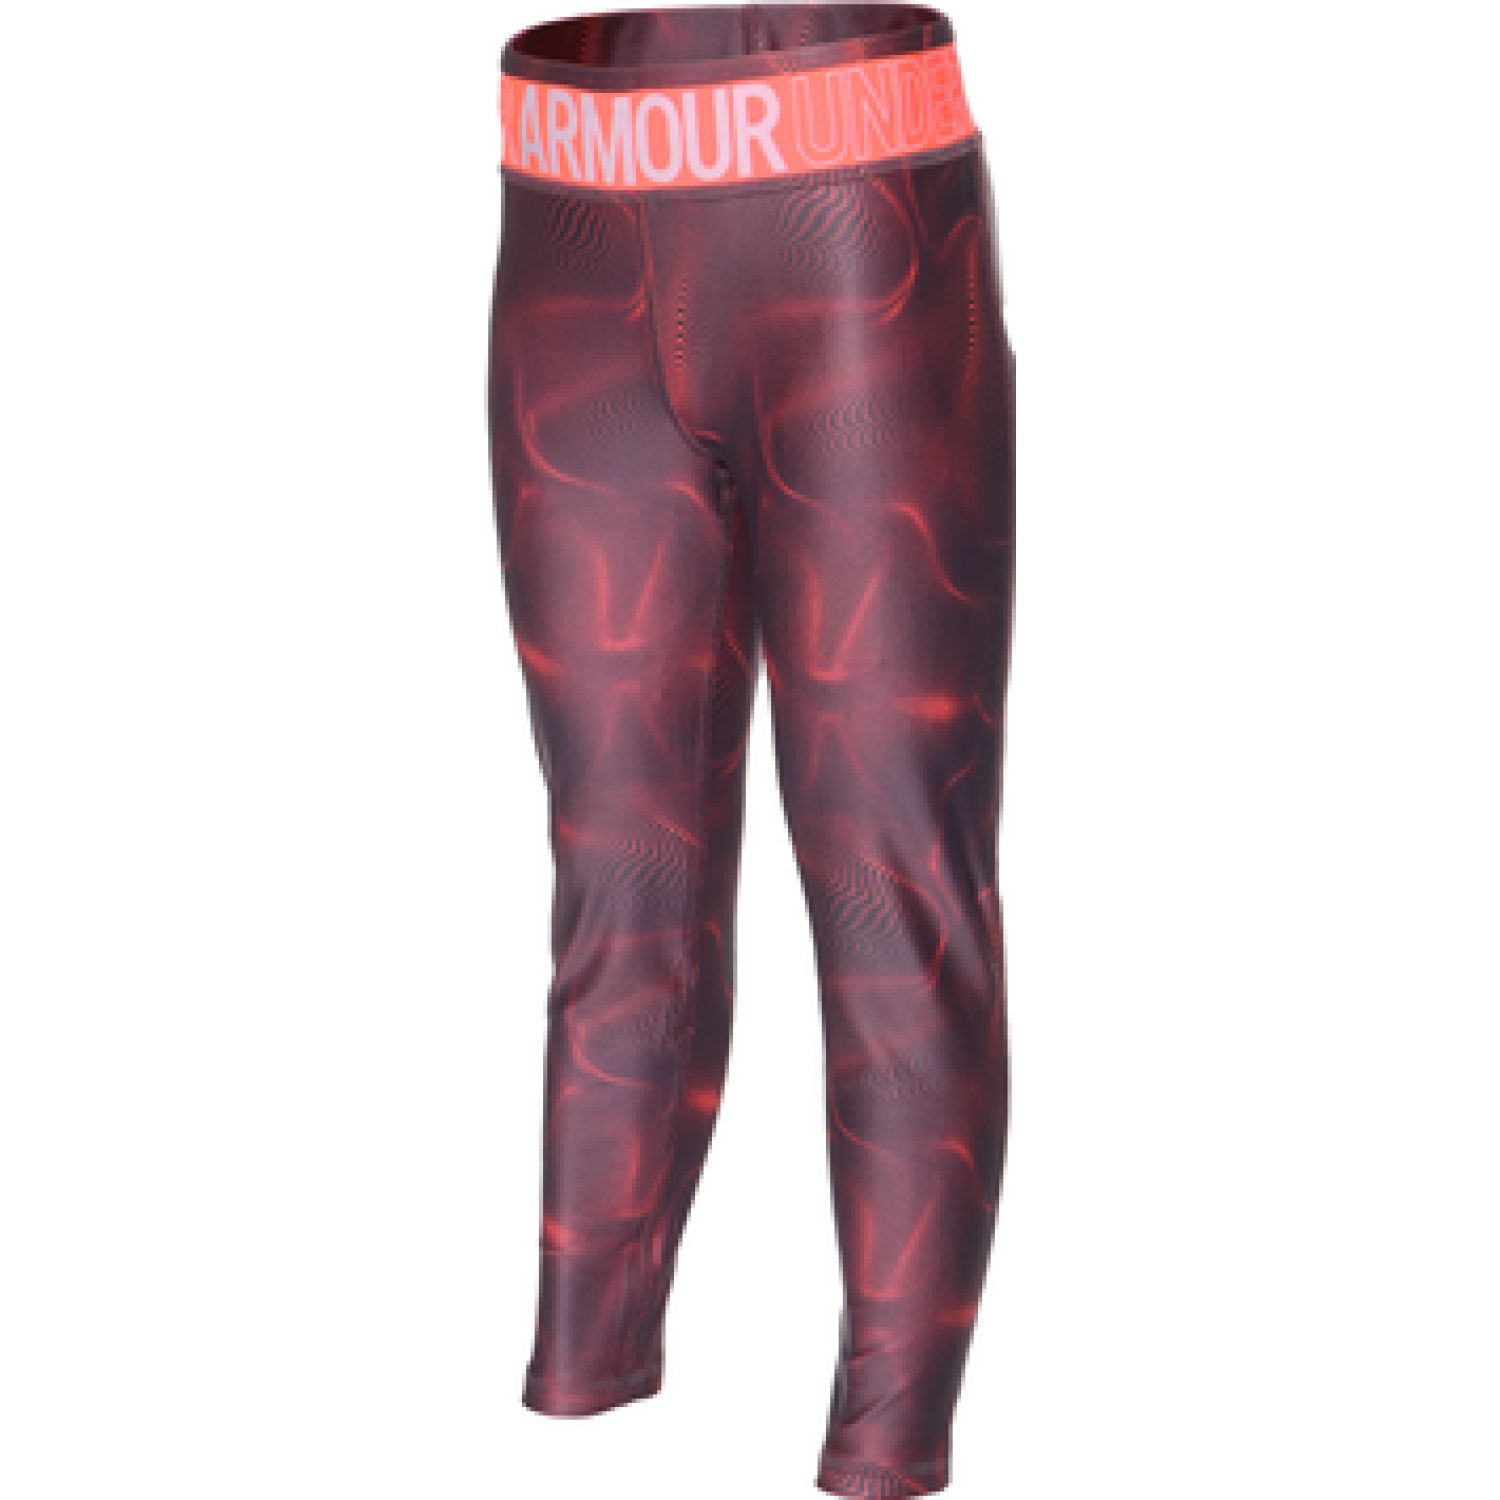 Under Armour Armour HG Printed Ankle Crop Fucsia Leggings